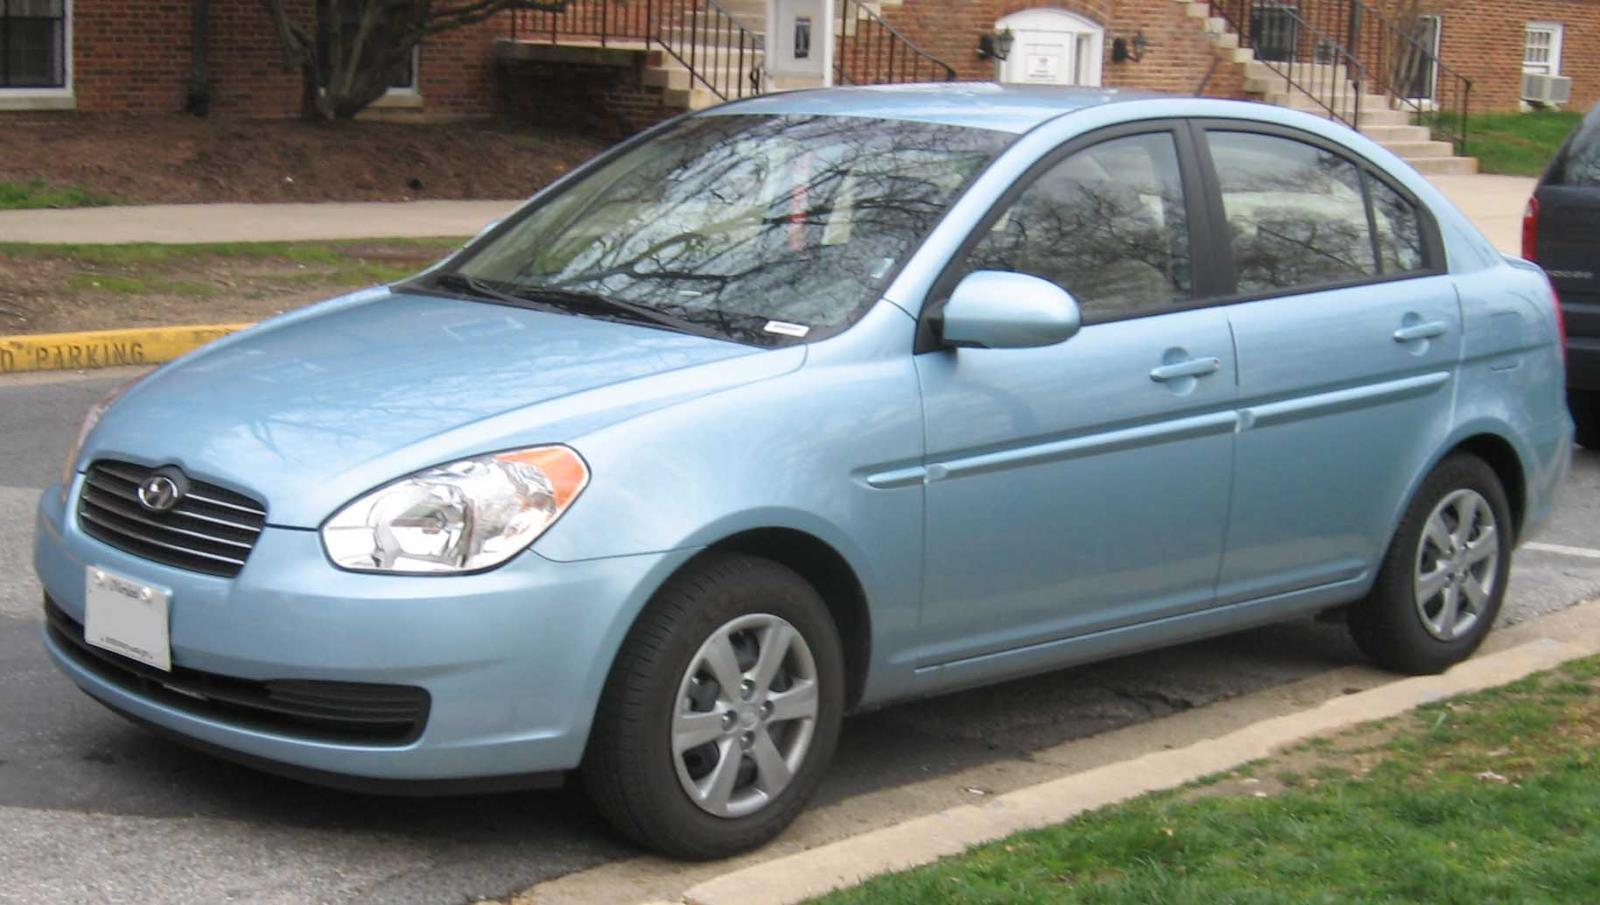 1999 Hyundai Accent Information And Photos Zombiedrive